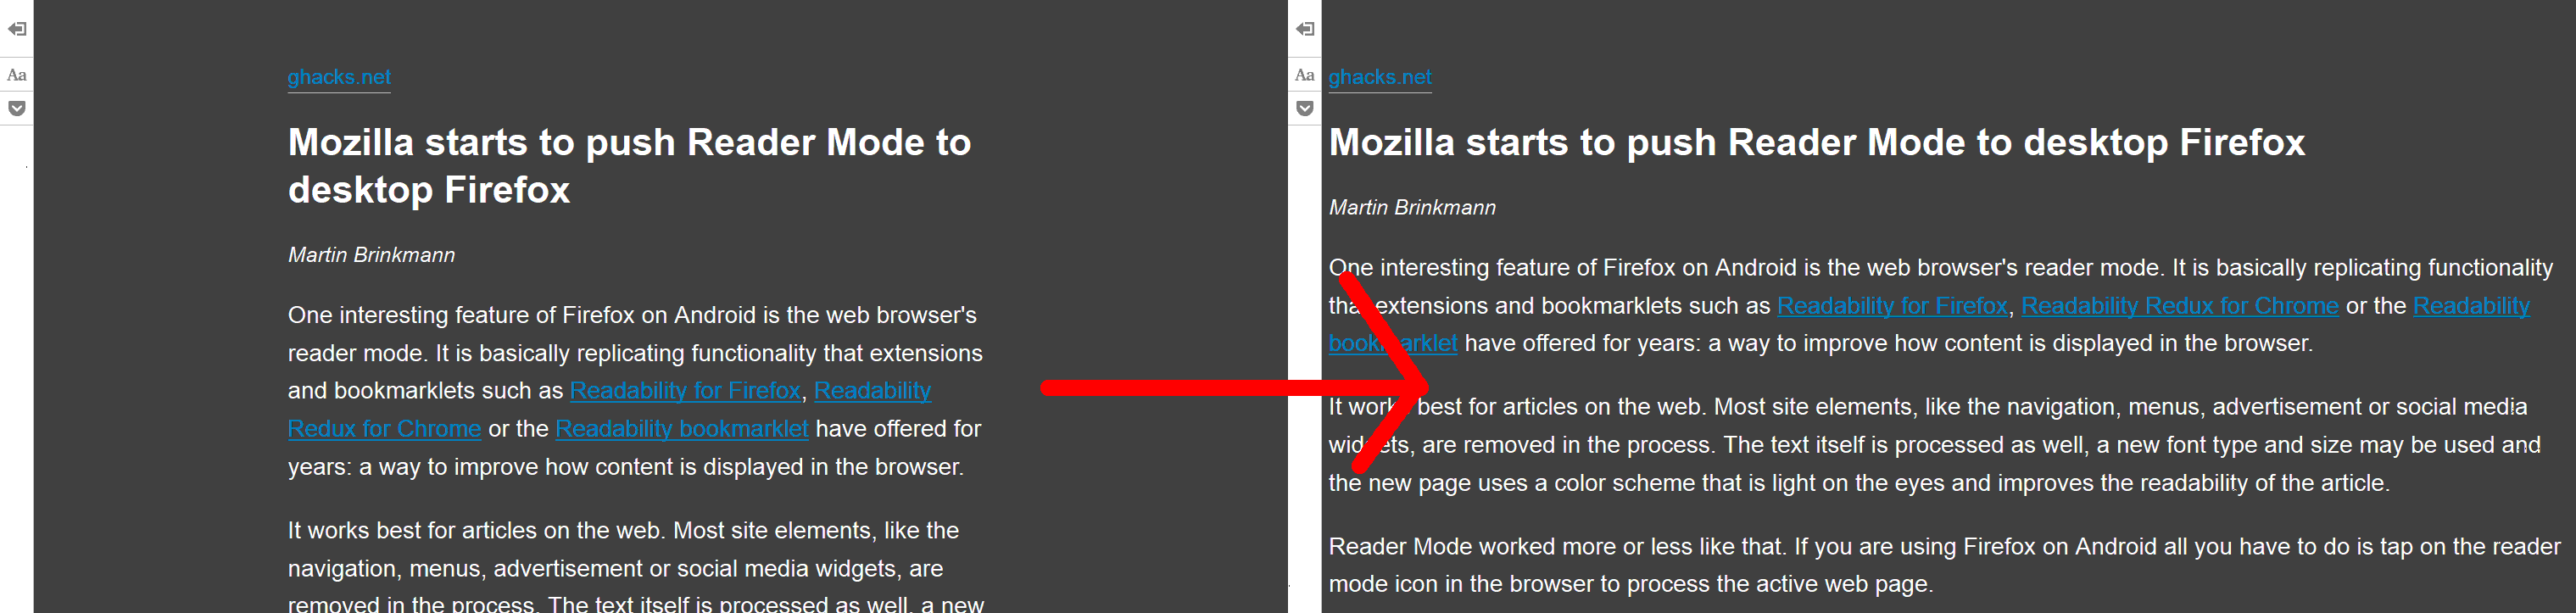 Improve Firefox reader view (reader mode) | Userstyles org